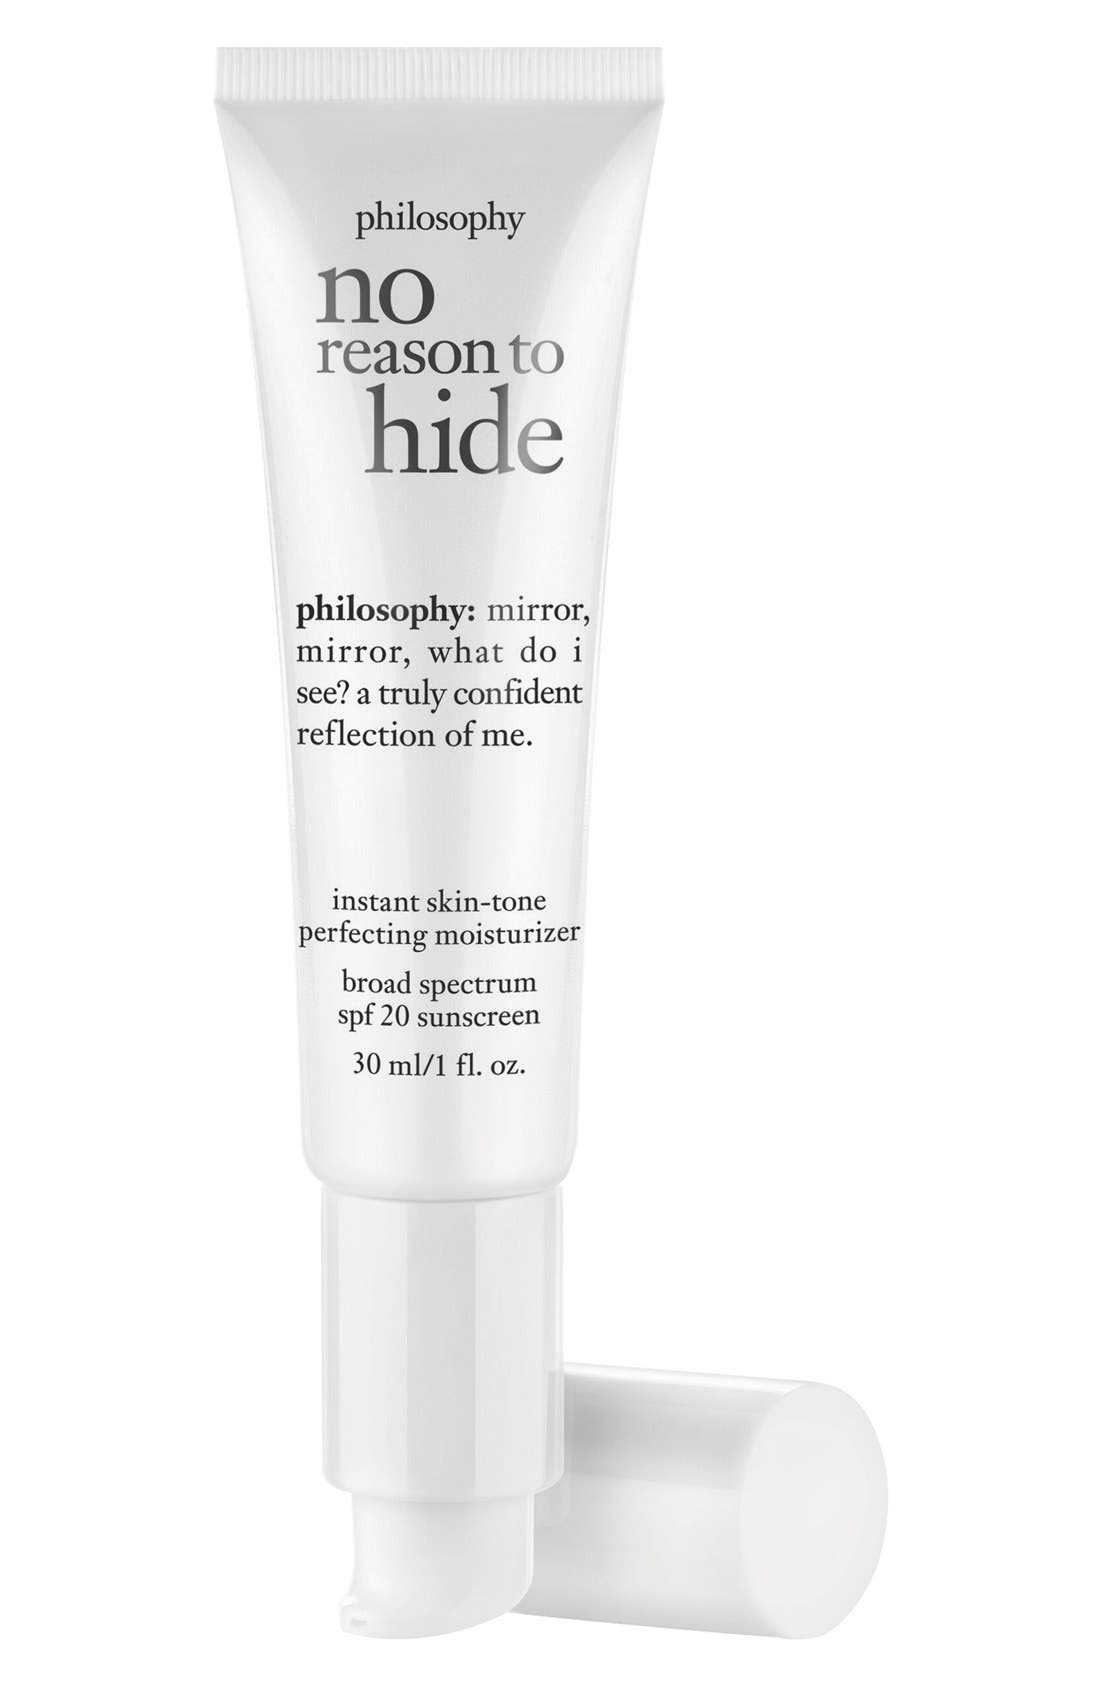 philosophy 'no reason to hide' instant skin-tone perfecting moisturizer broad spectrum SPF 20 sunscreen